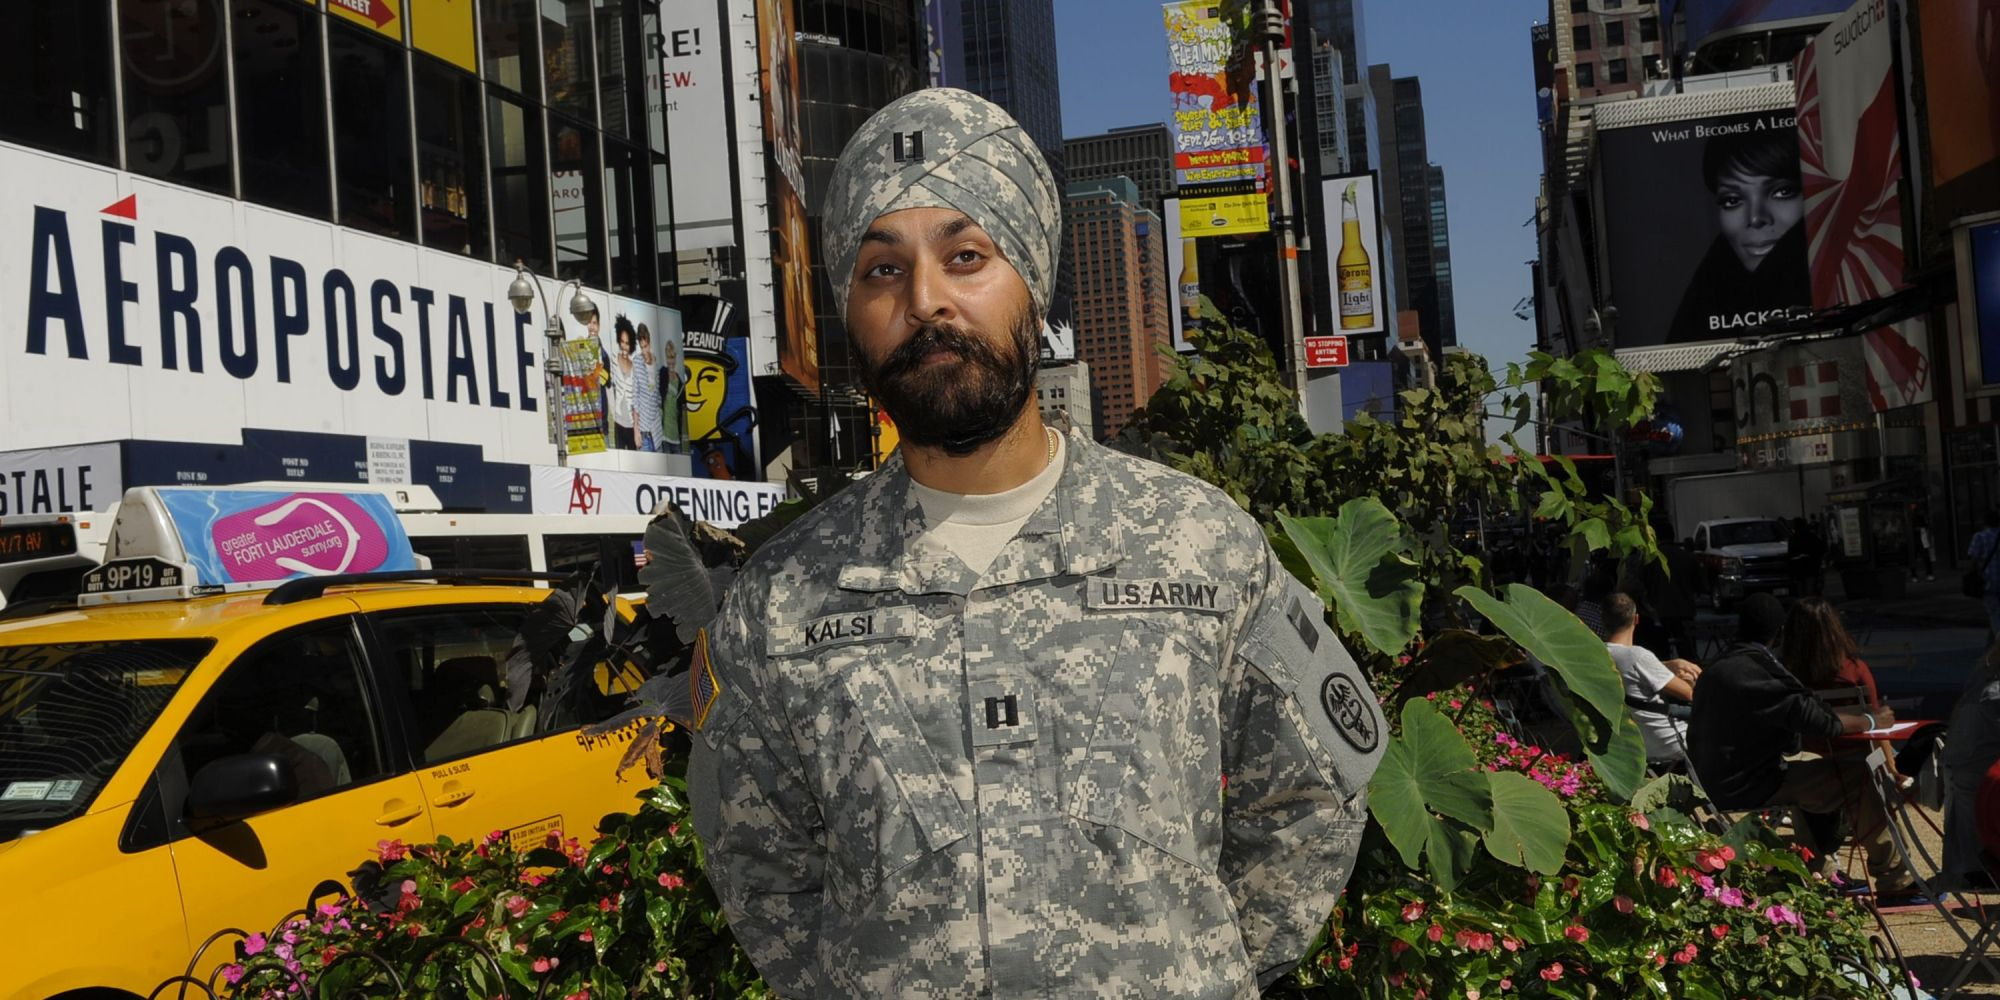 Pentagon Relaxes Rules On Religious Clothing And